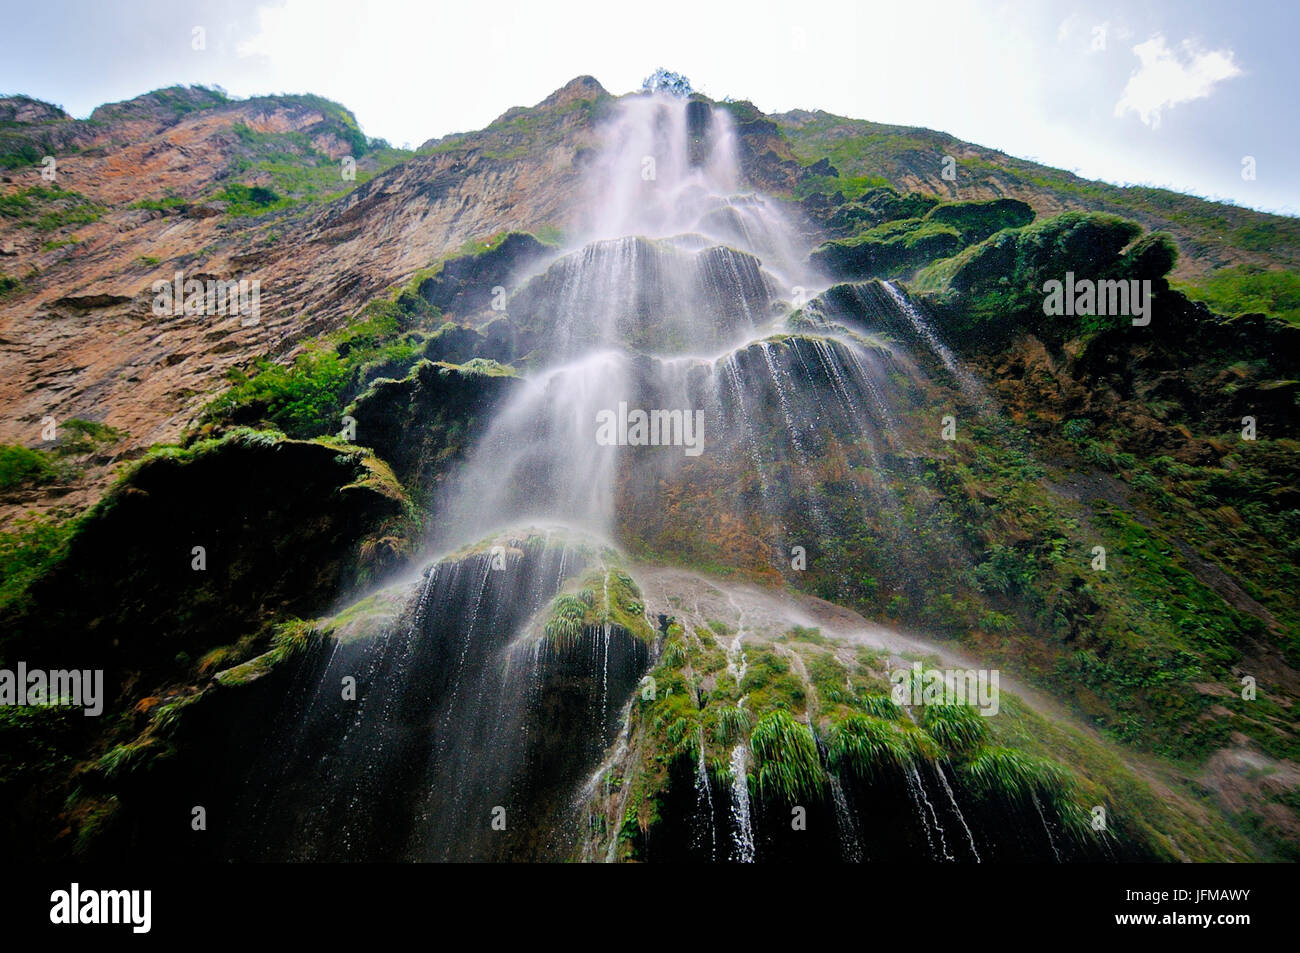 Under a waterfall in the Canyon Sumidero, Chiapas, Mexico - Stock Image